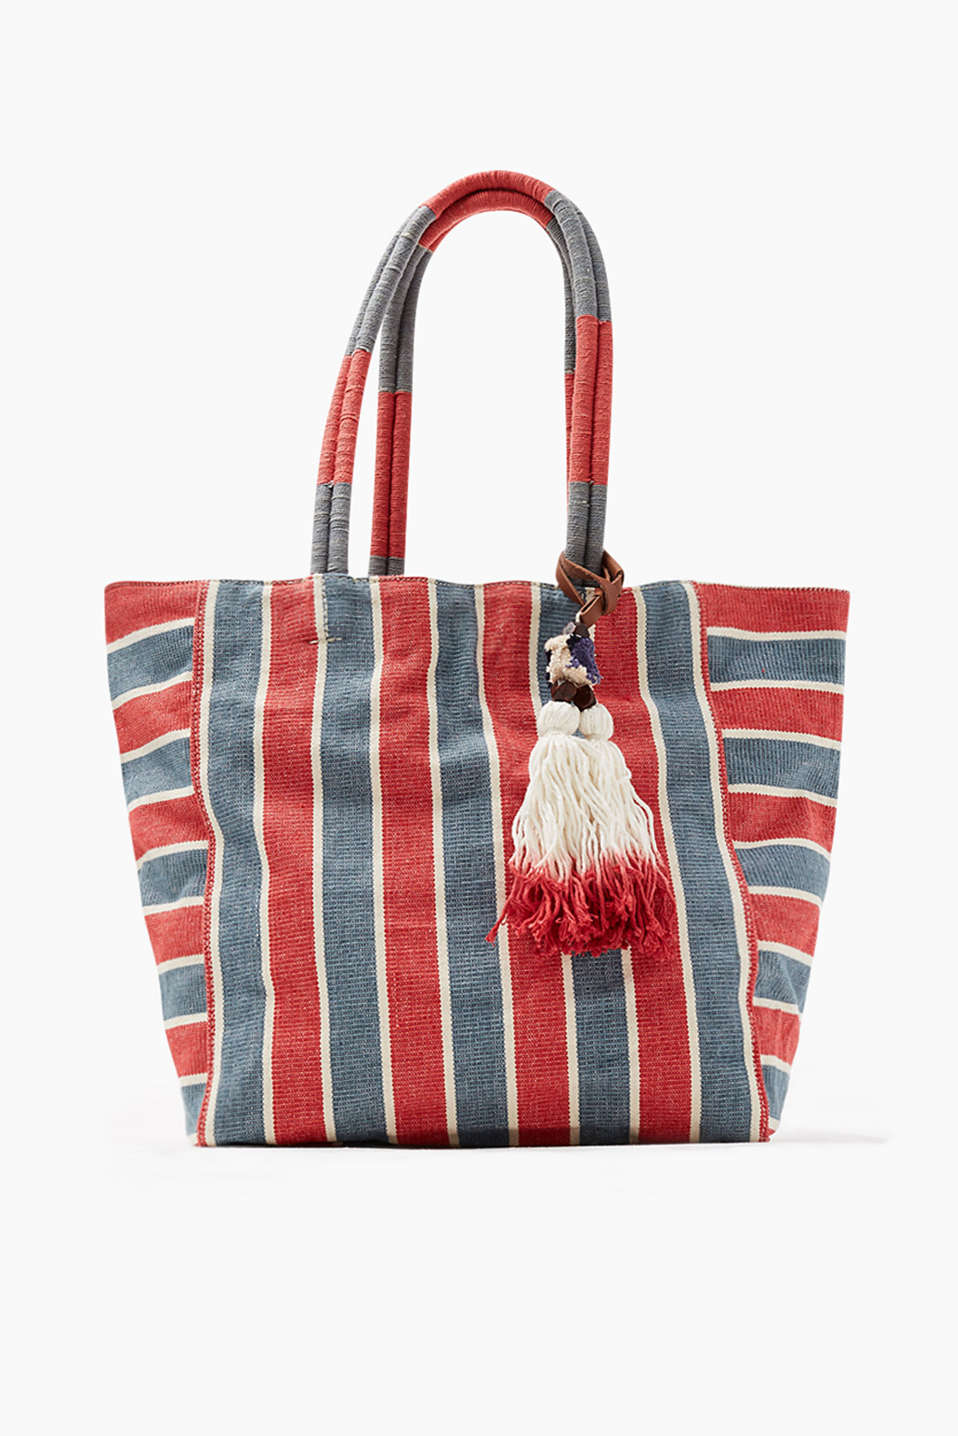 Shopper with fringed tassel made of 100% cotton